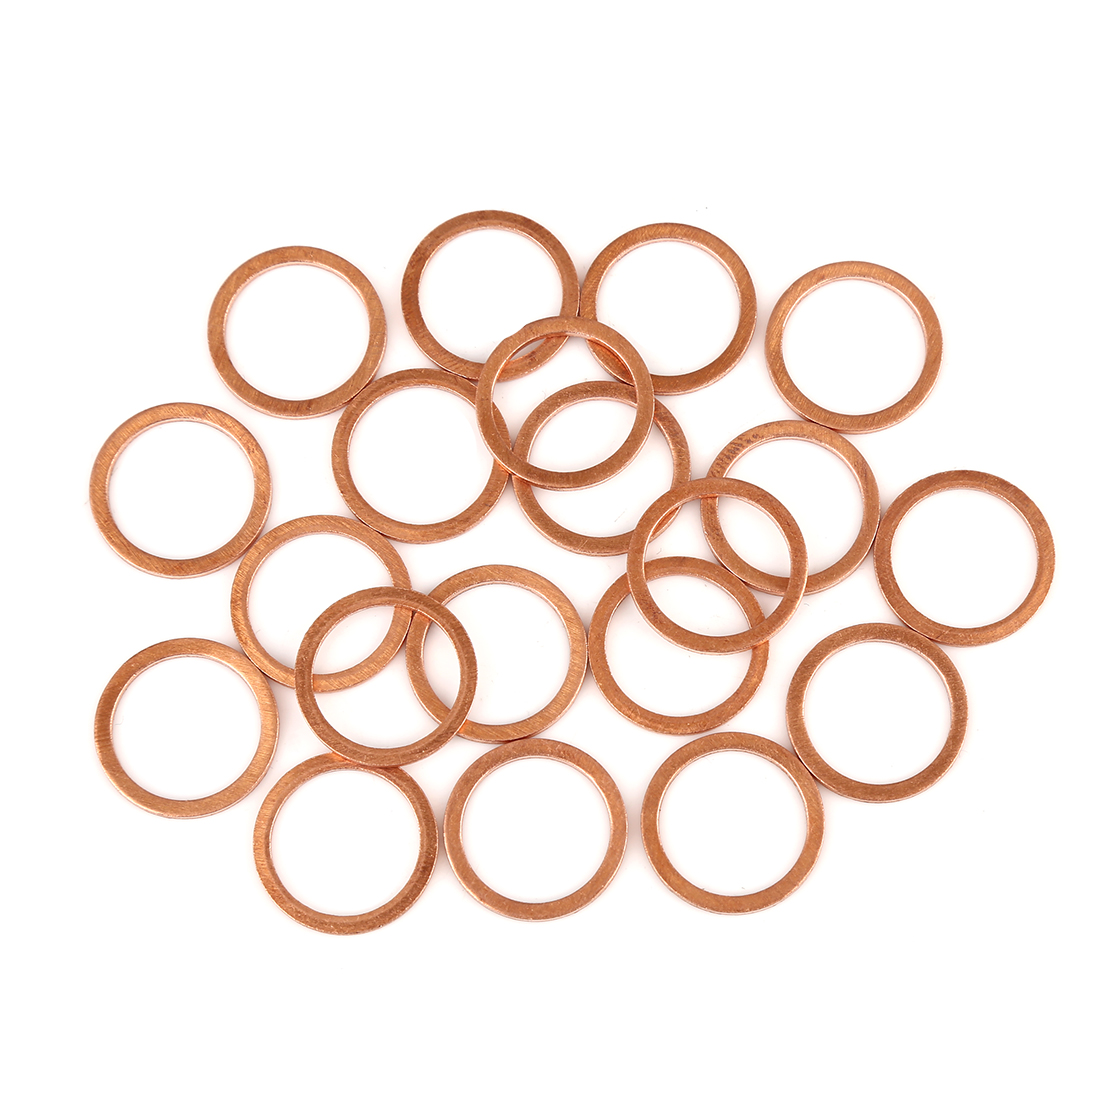 20pcs Copper Washer Flat Sealing Gasket Ring Spacer for Car 17 x 21 x 1.5mm